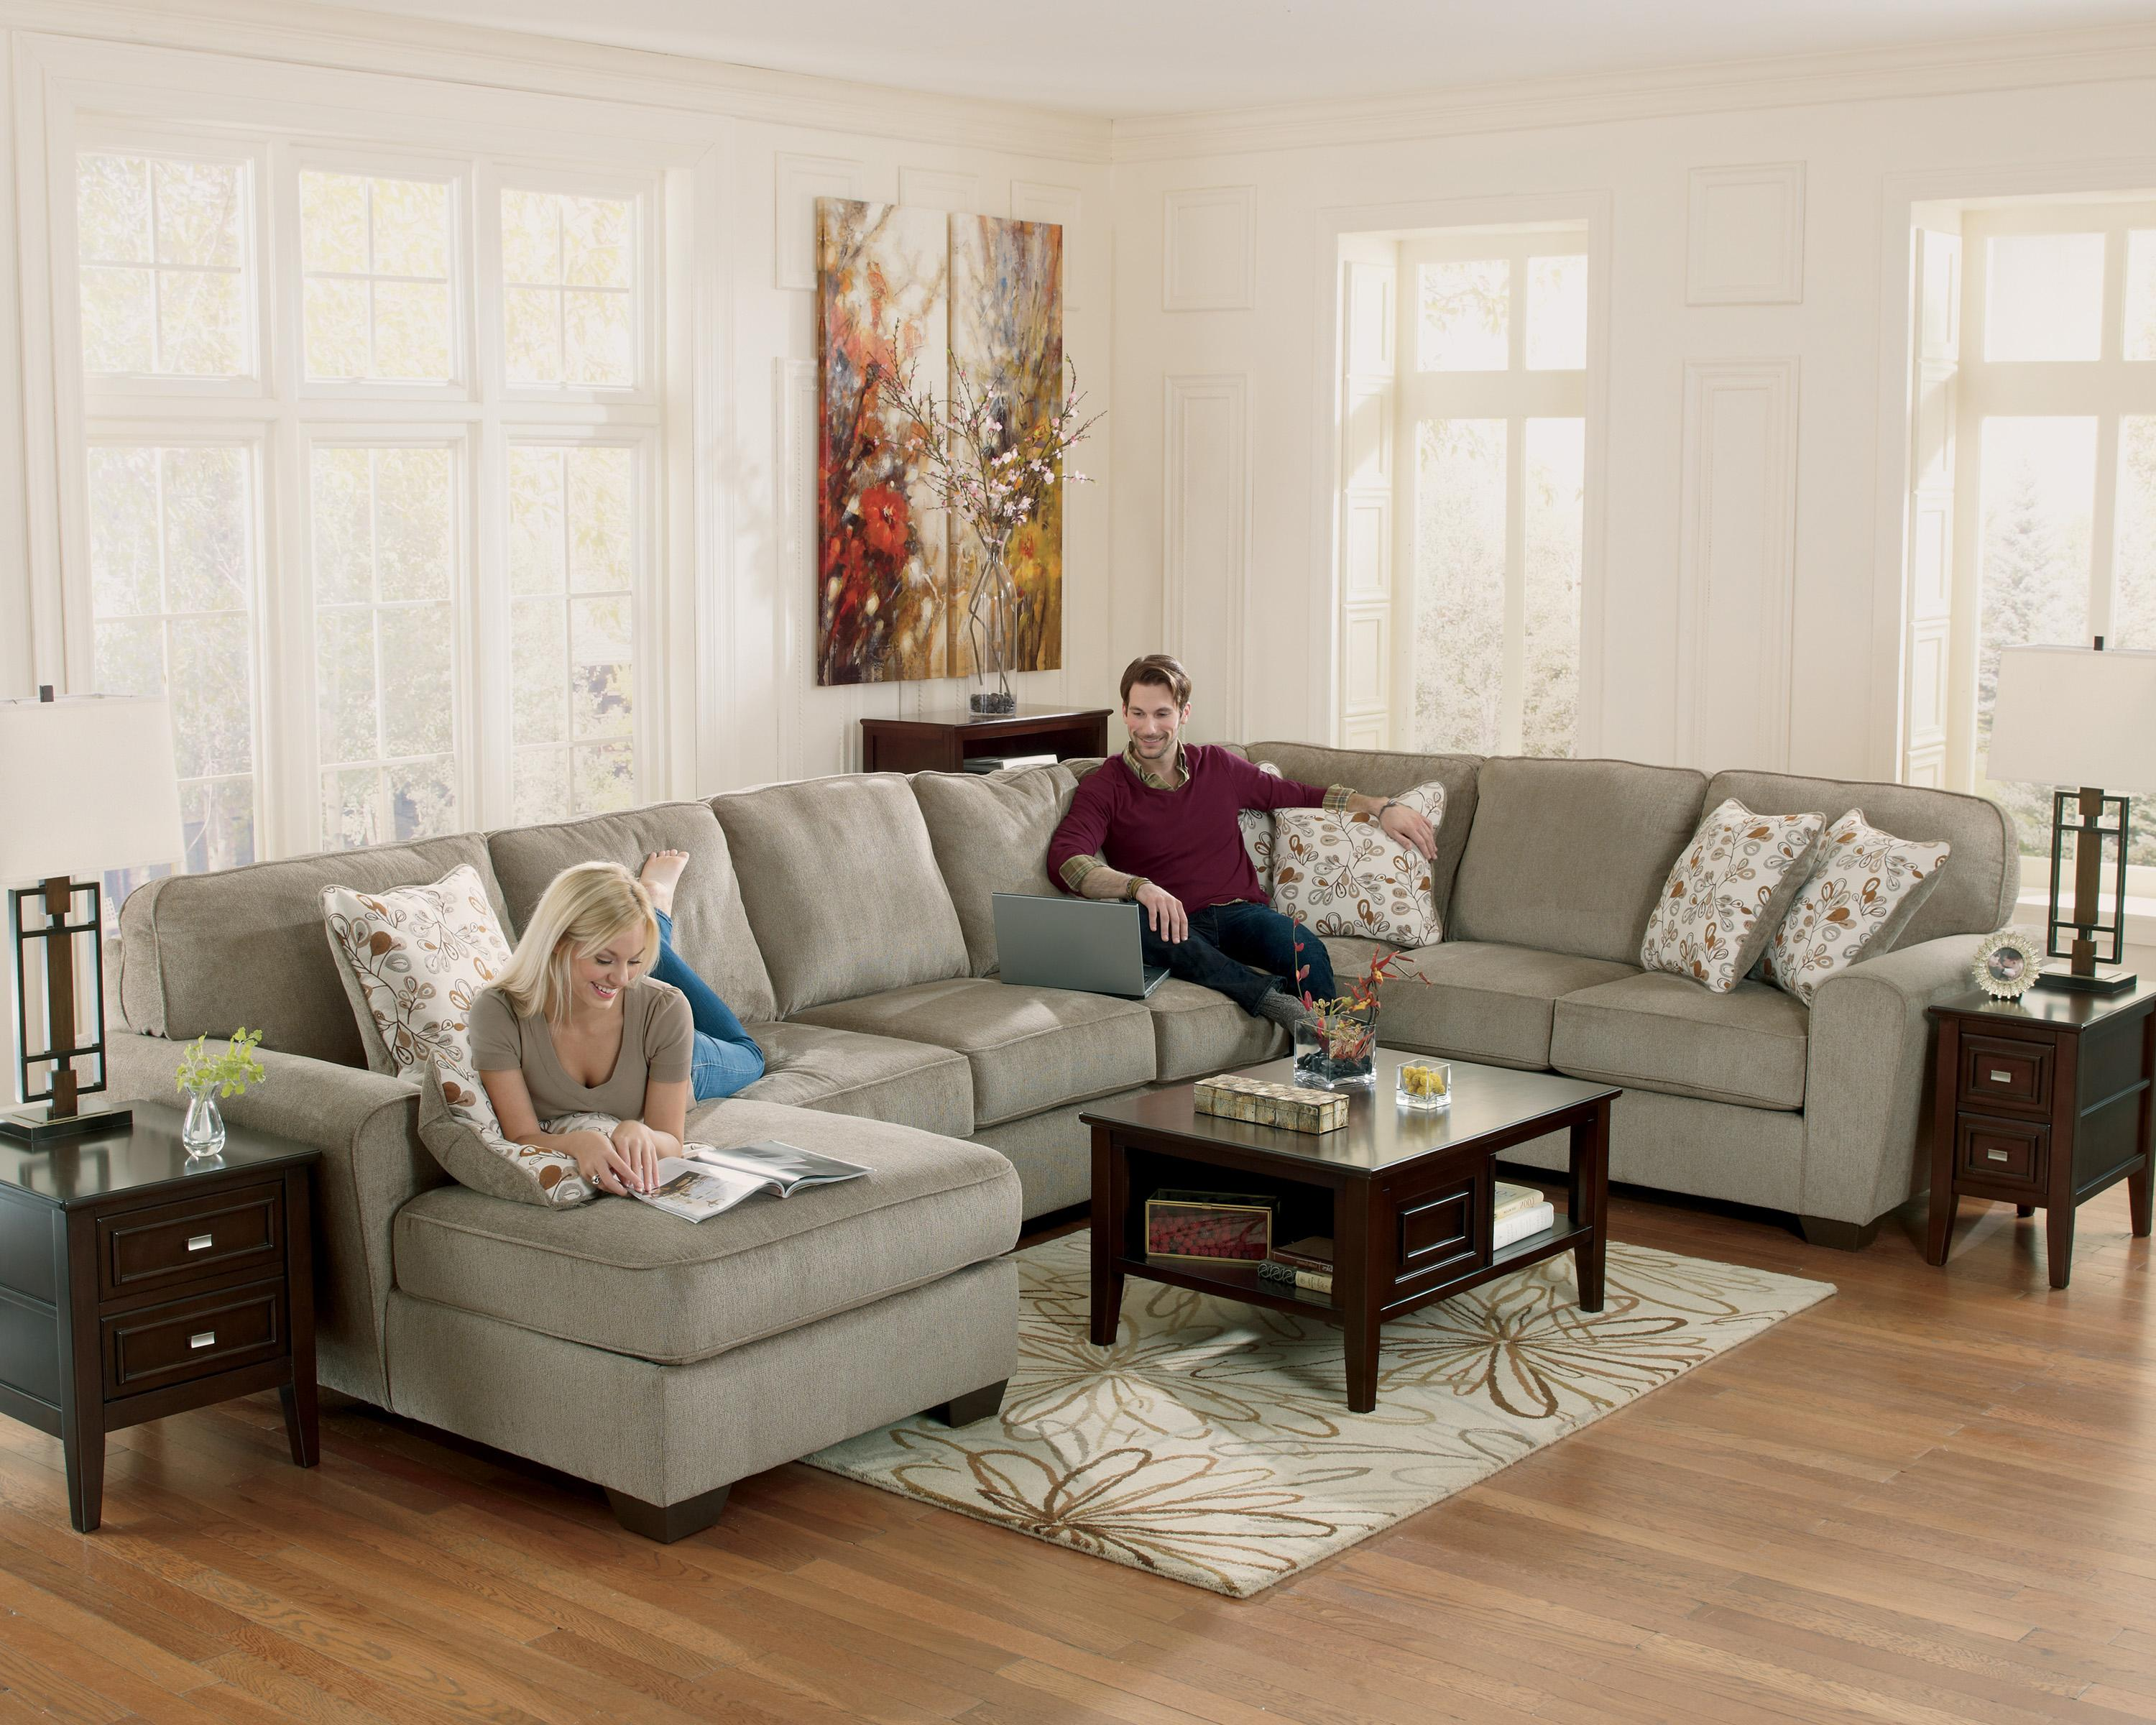 Ashley Furniture Patola Park Patina 4 Piece Sectional With Left Chaise Furniture And